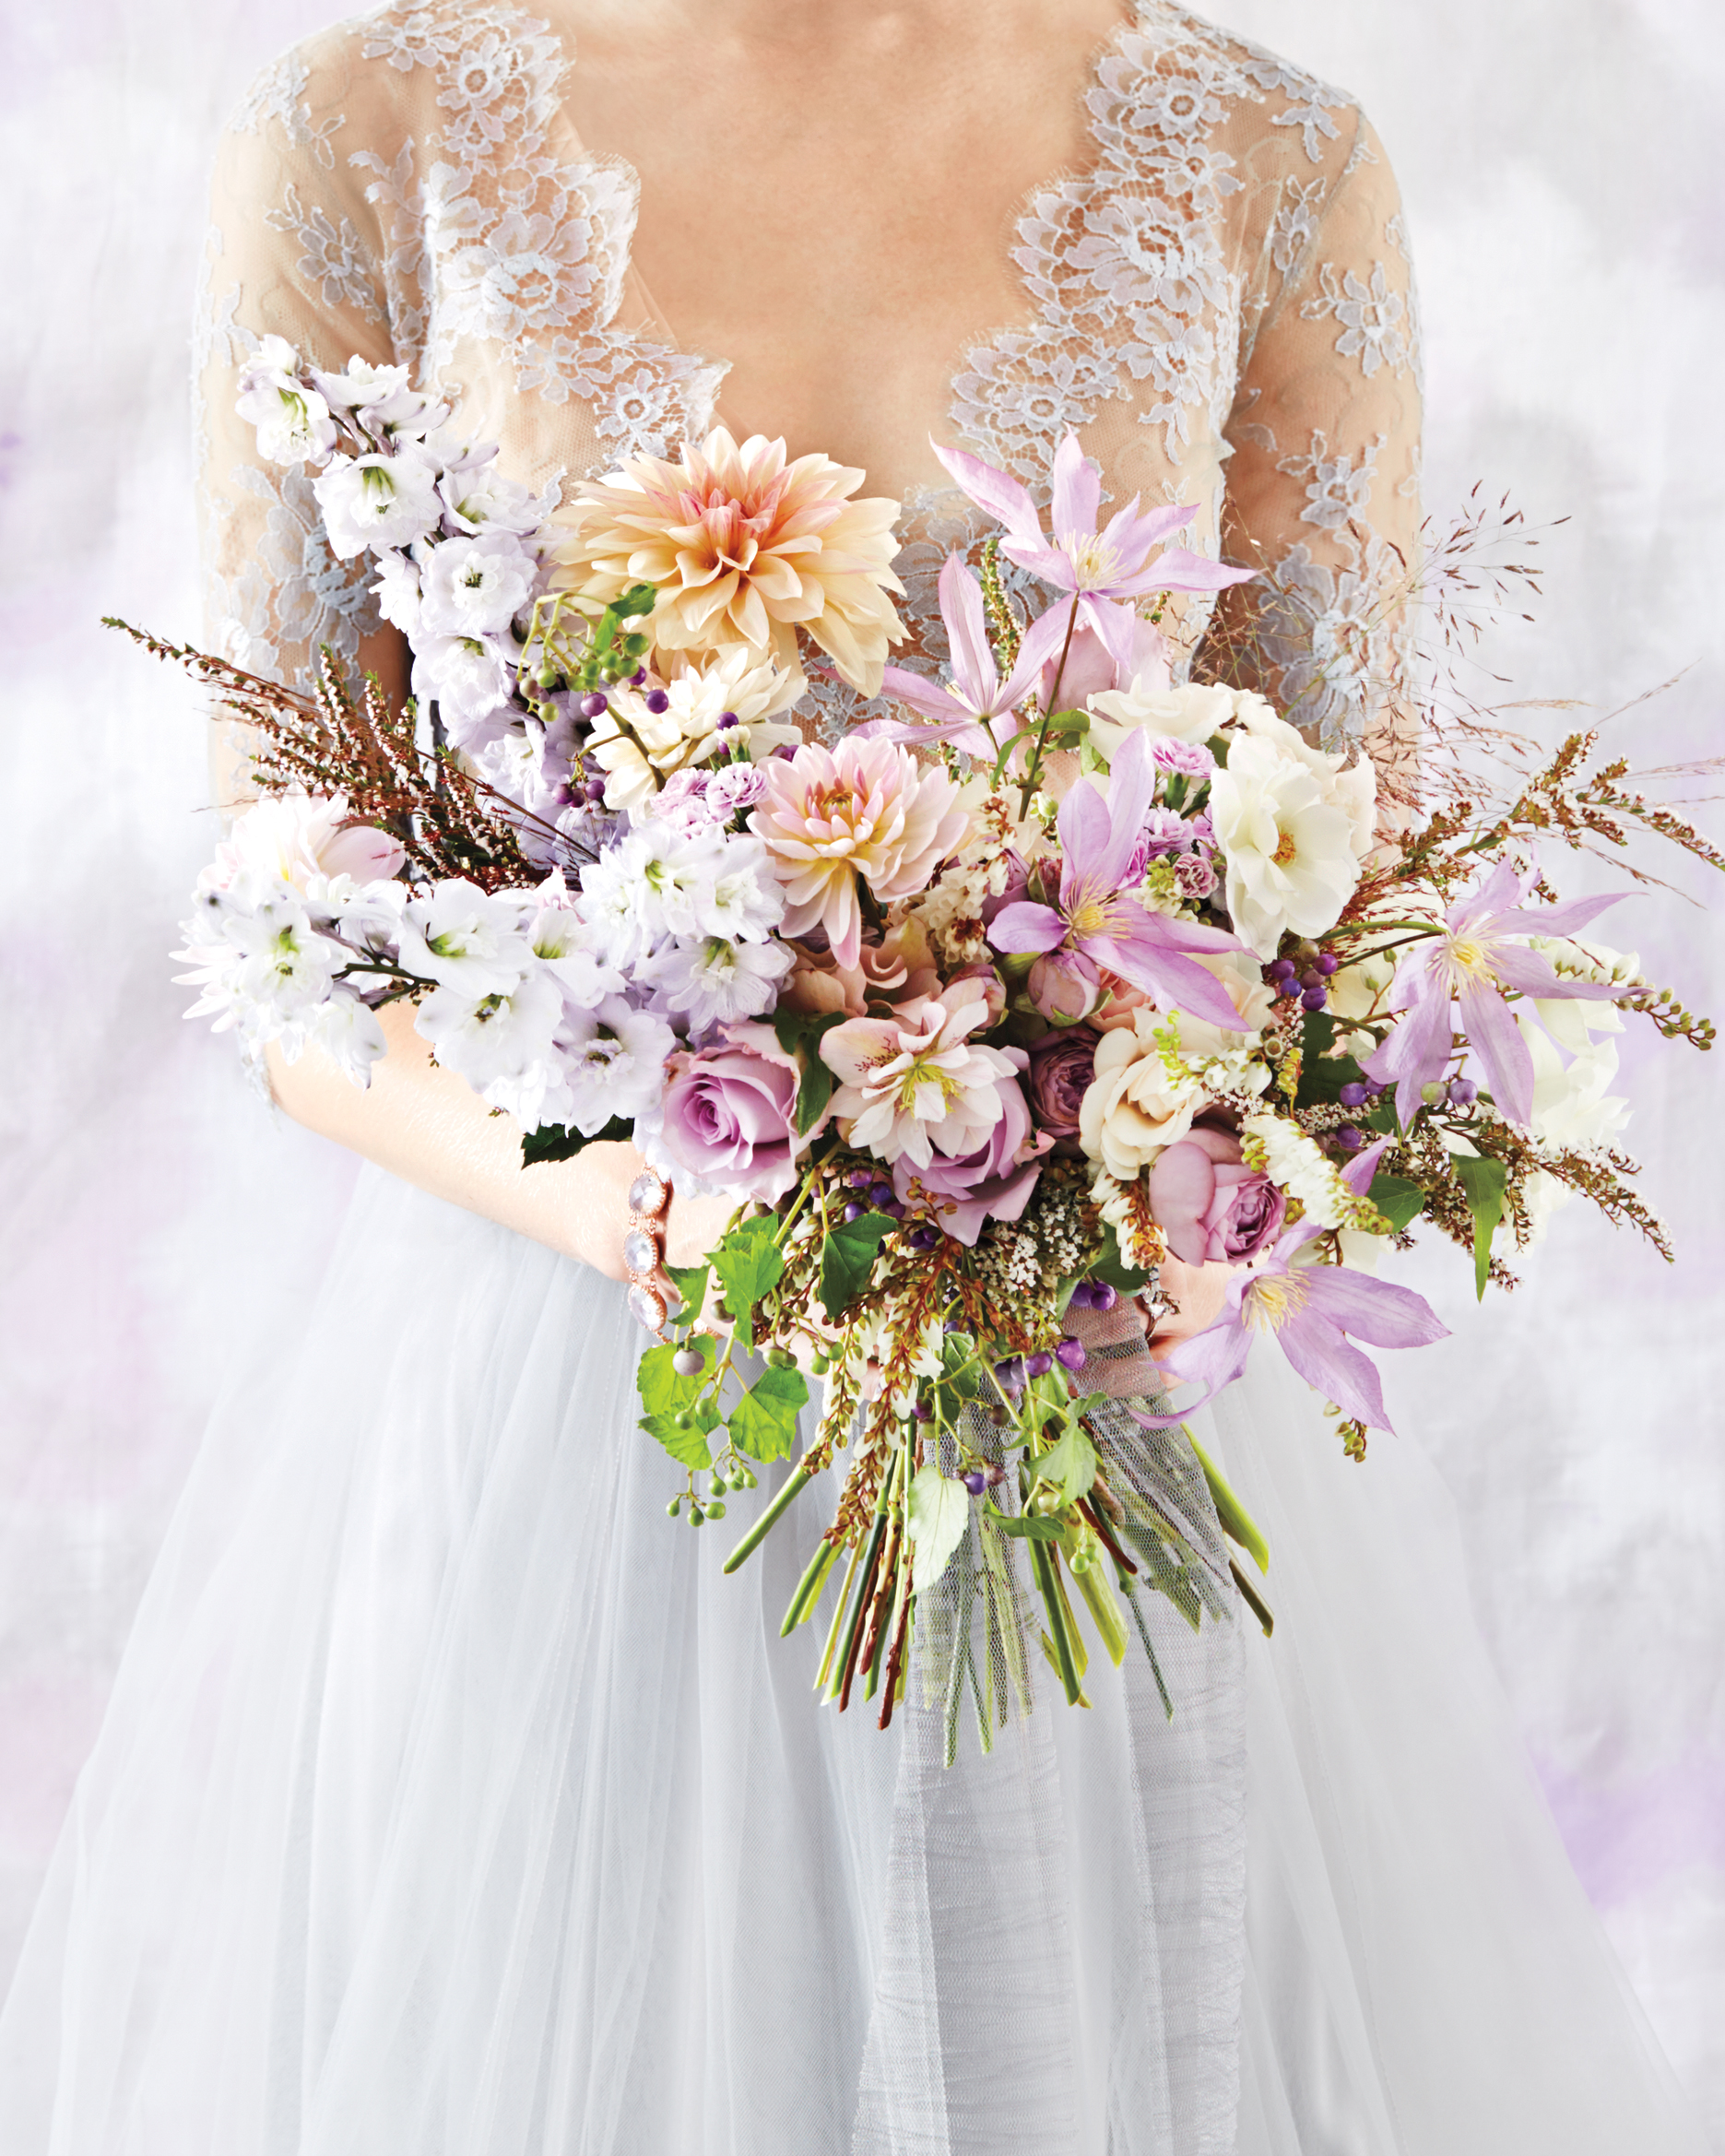 Lilac + Gray = The Most Romantic Wedding Colors Ever